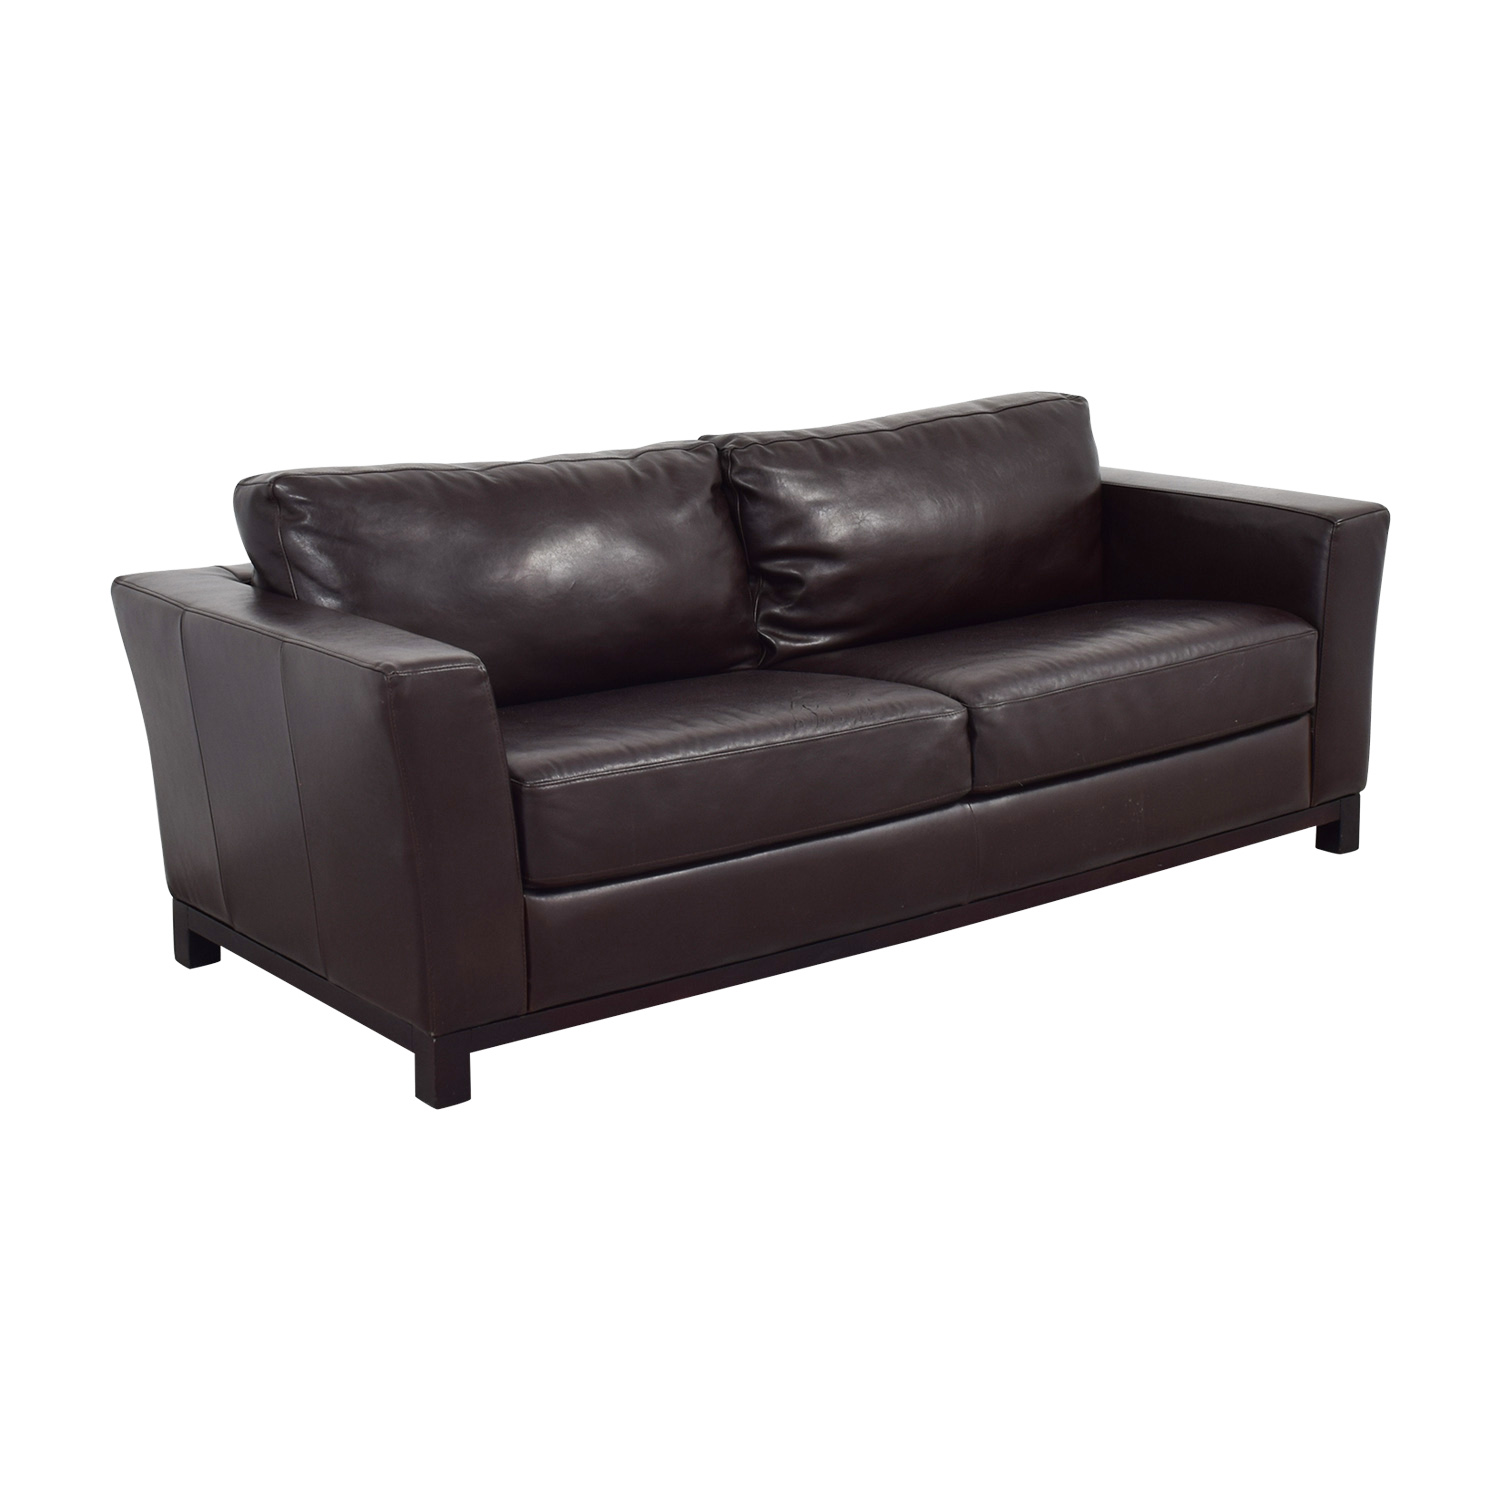 82 Off The Door Store The Door Store Mahogany Leather Sofa Sofas